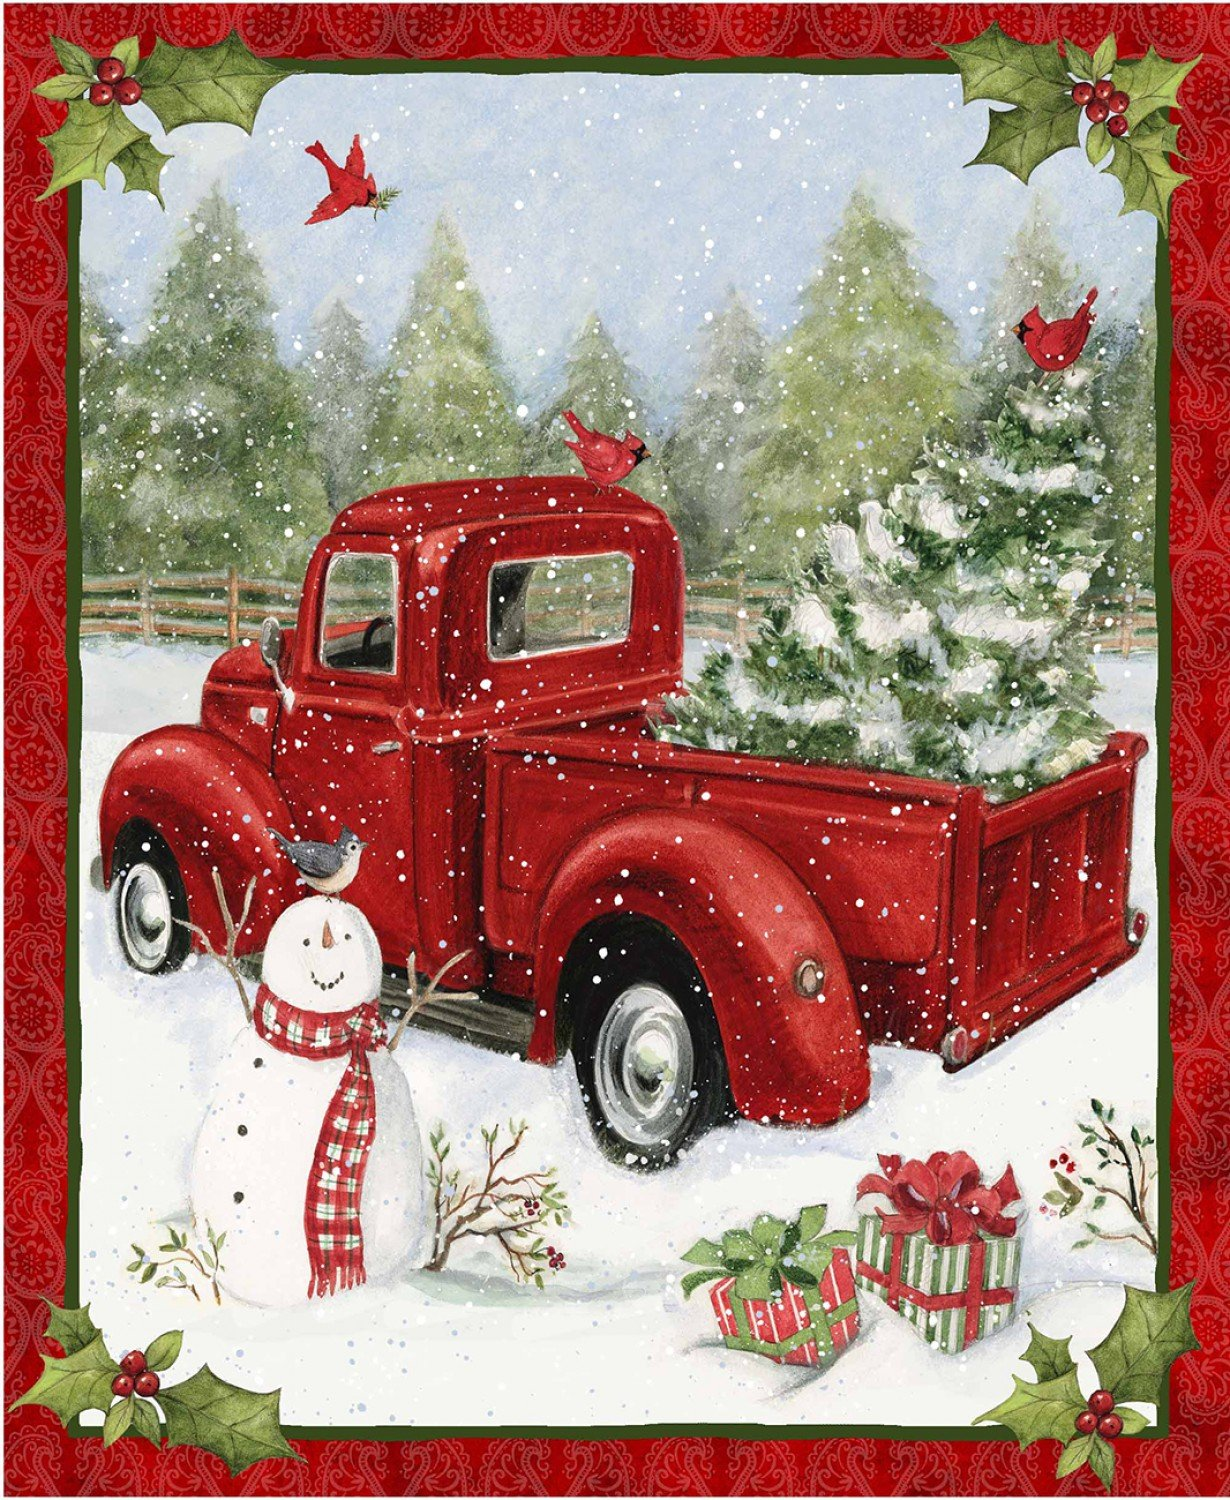 Red Truck Haulin' Christmas Tree 69167 Panel